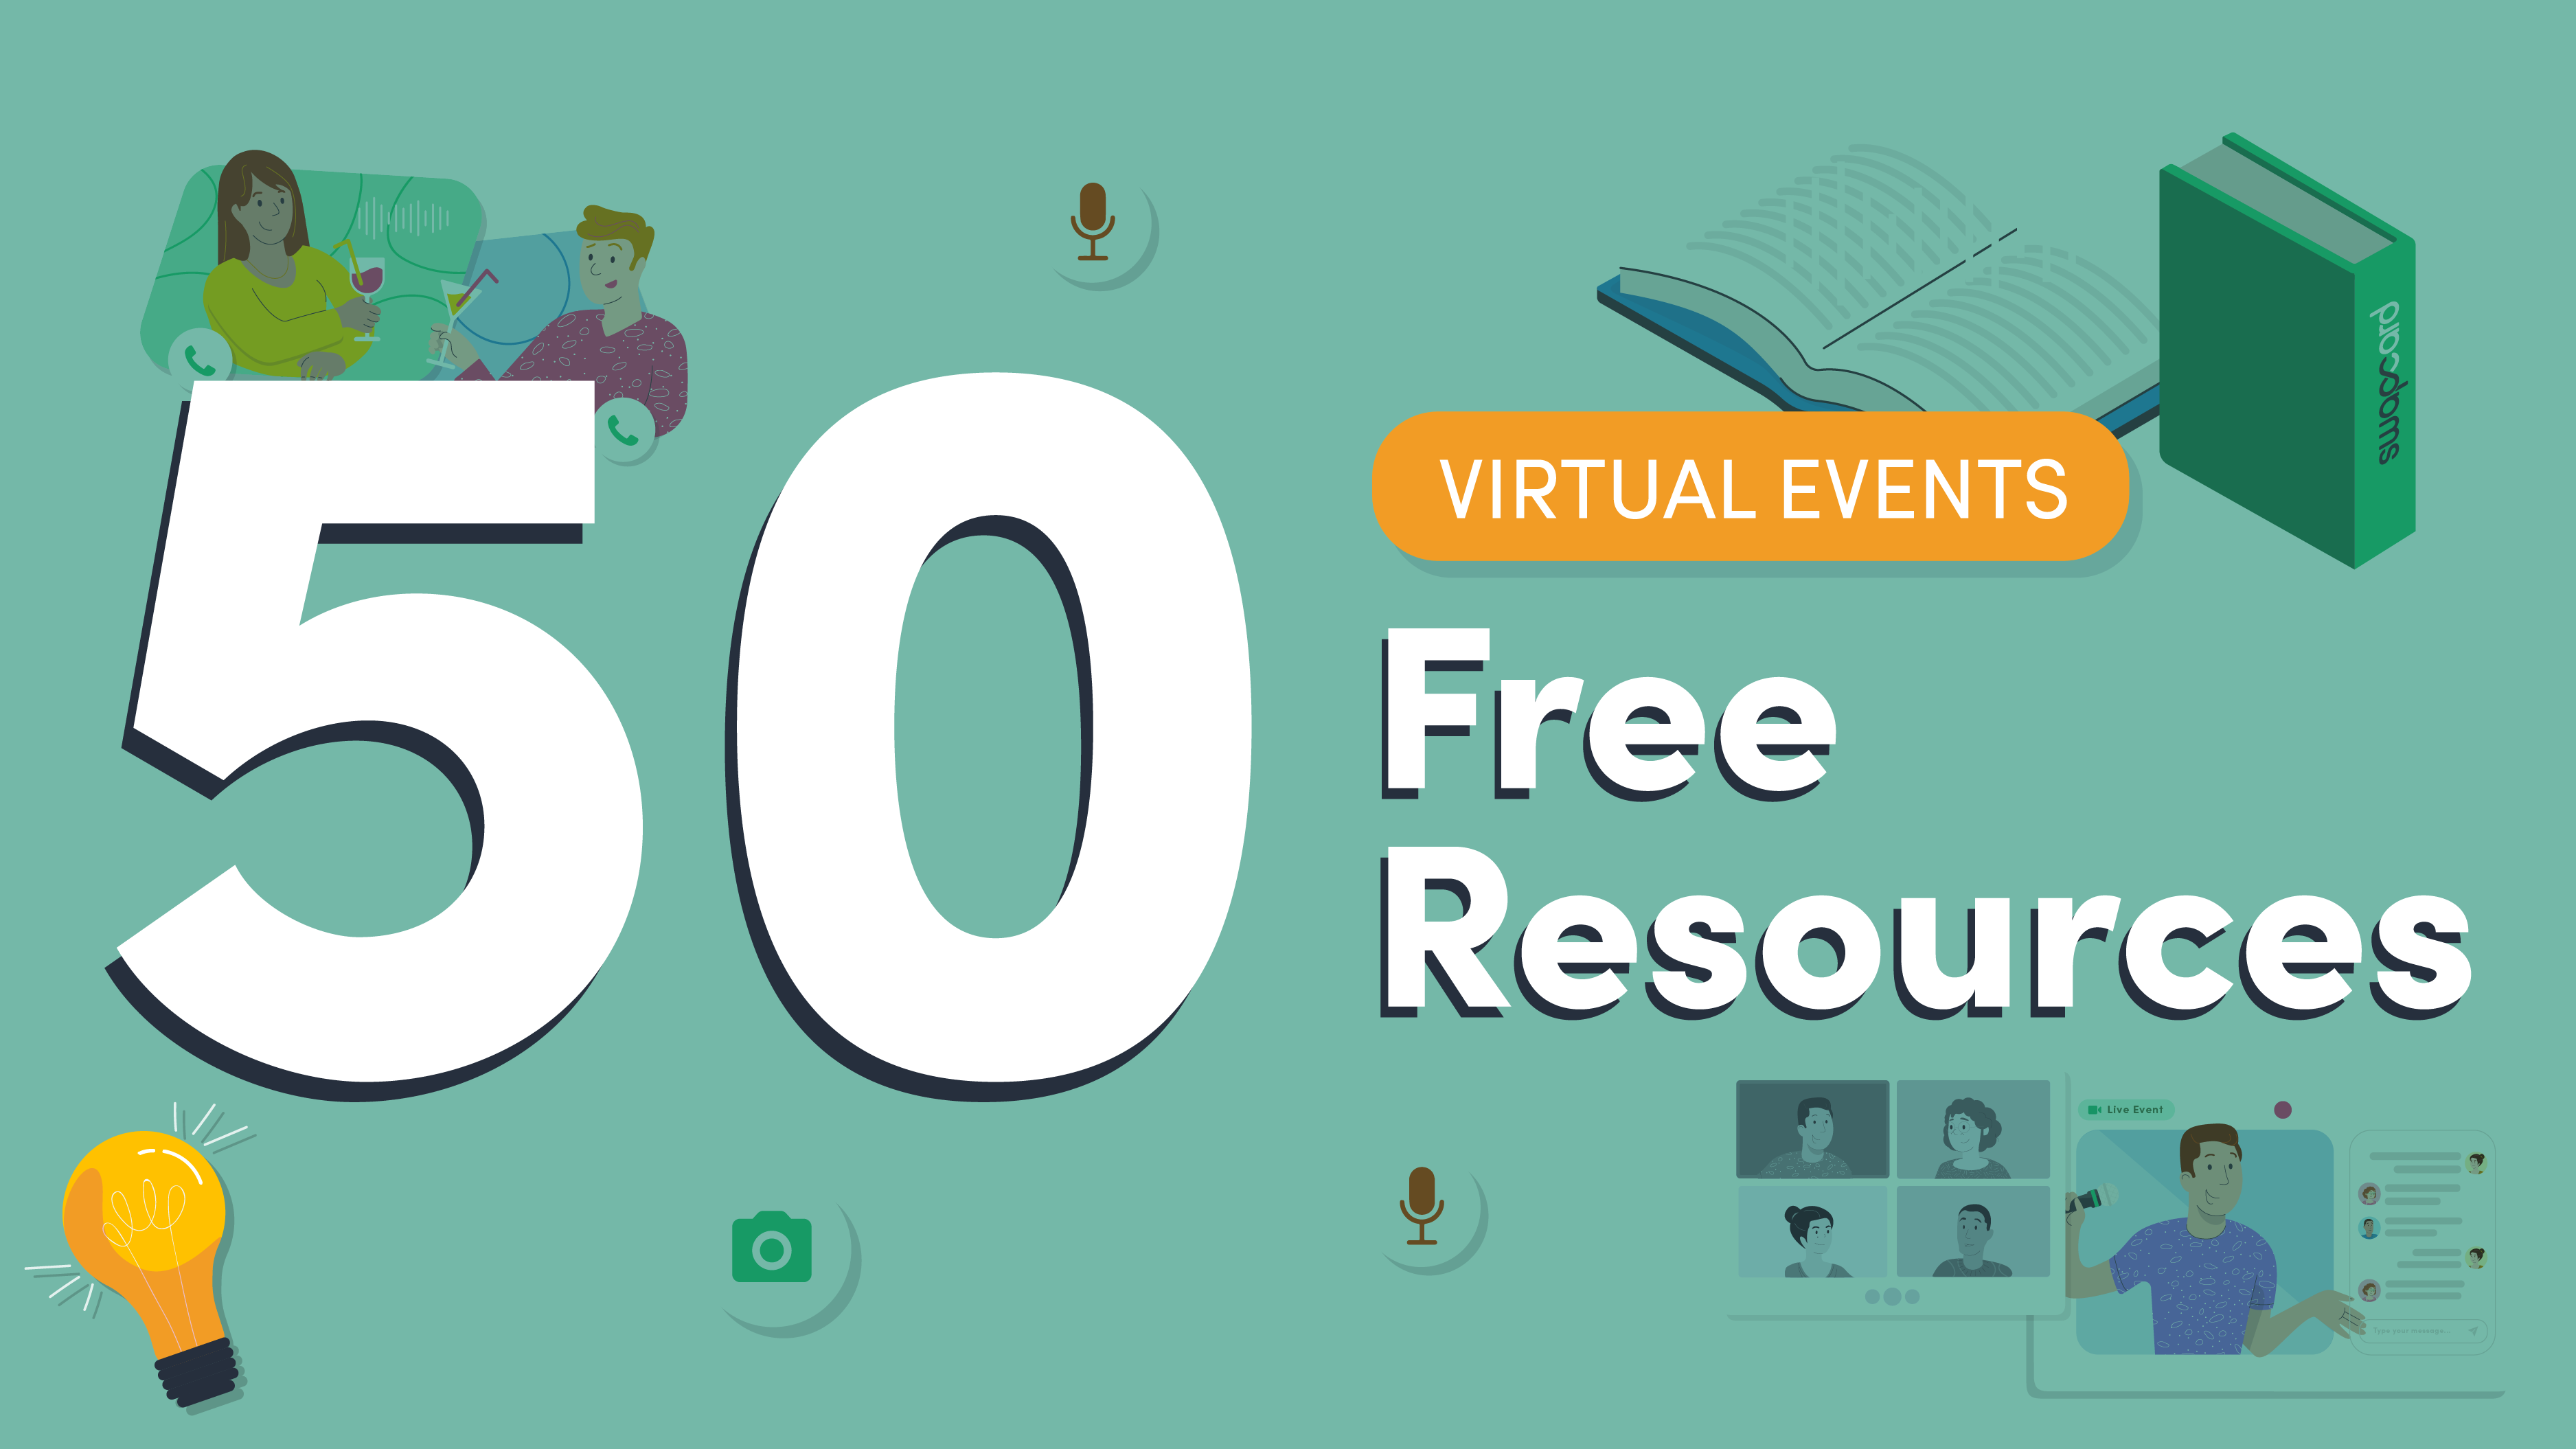 Virtual Events: 50 Free Resources